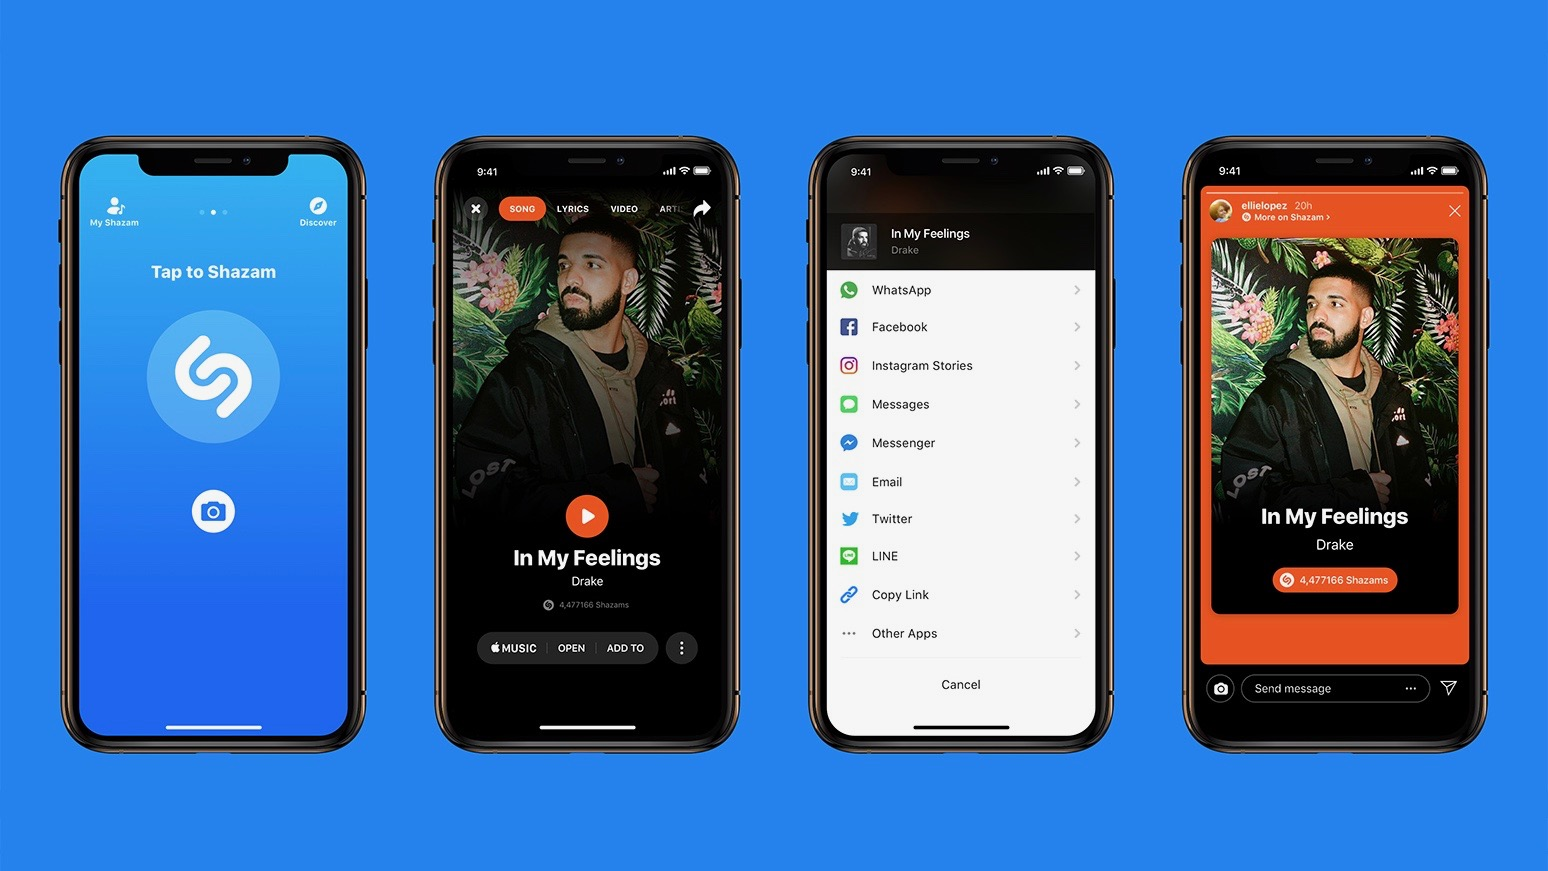 Apple-owned Shazam for iOS updated with Instagram Story integration